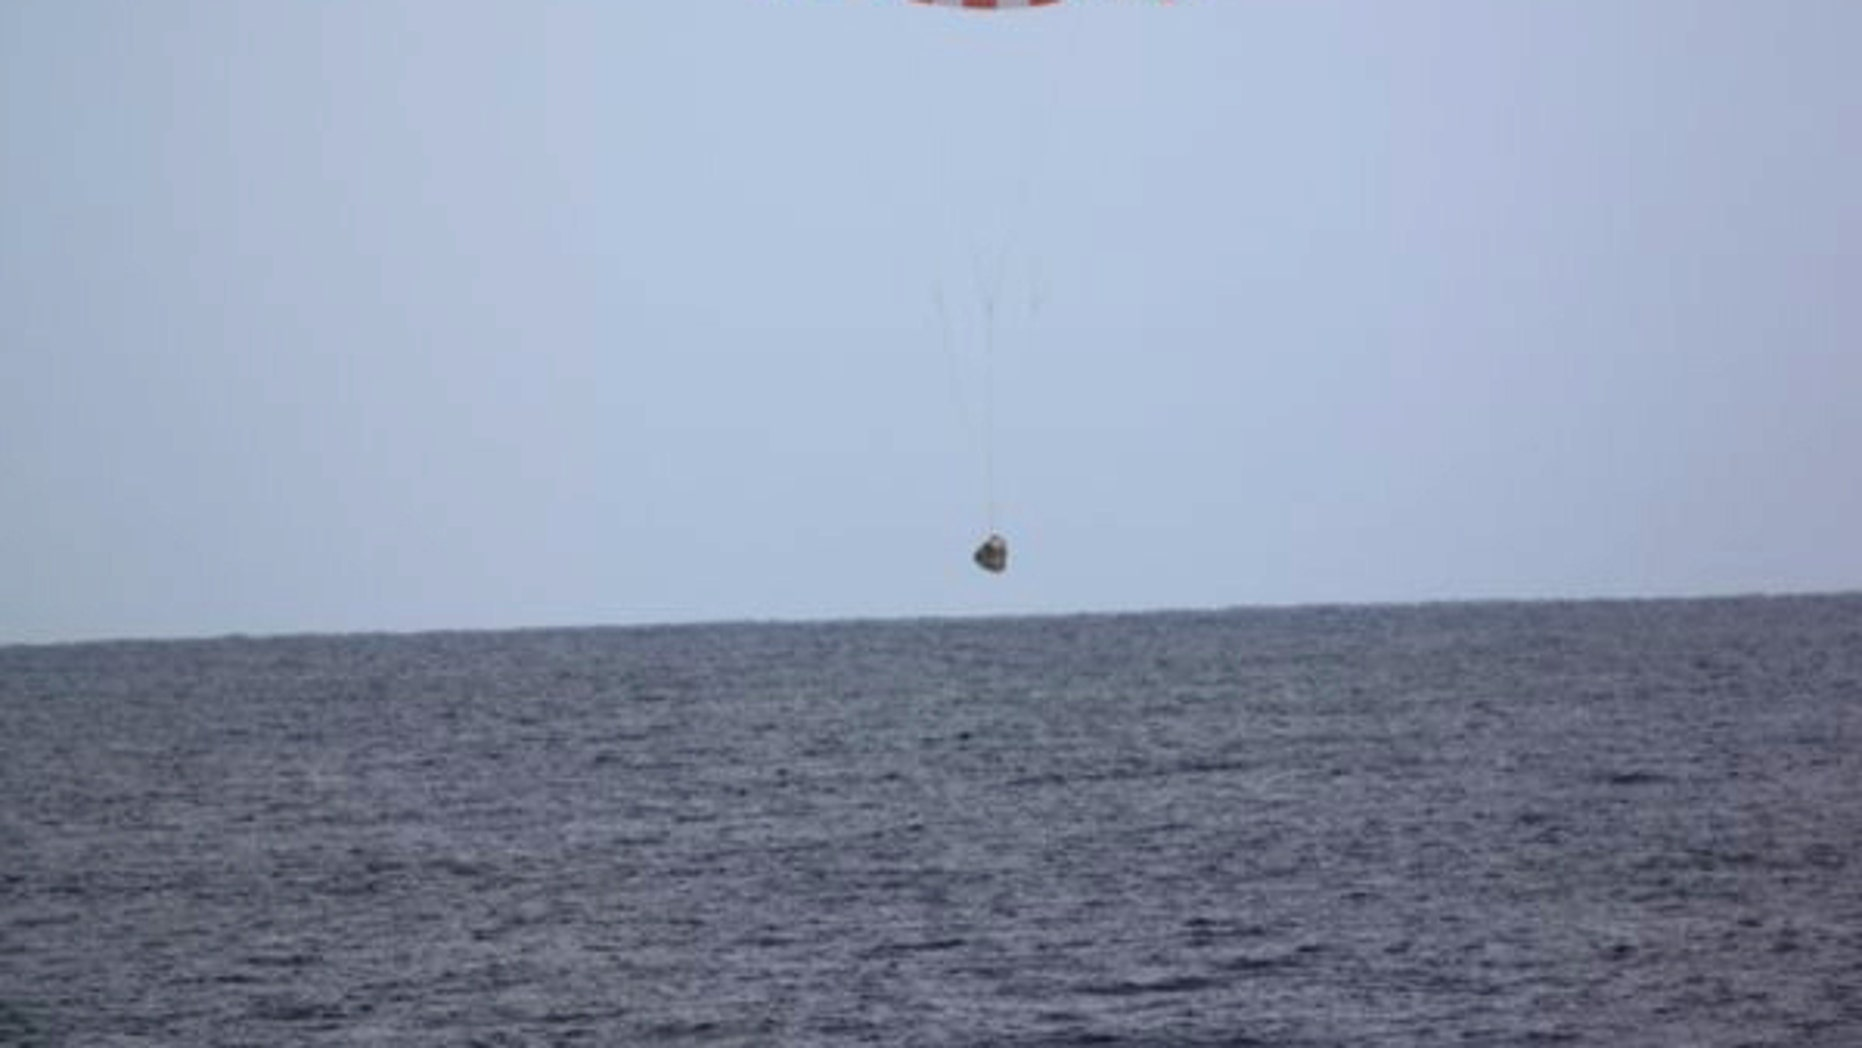 In this photo released by SpaceX, a SpaceX capsule containing science samples from NASA's one-year space station resident, approaches the Pacific Ocean, a few hundred miles off the Southern California coast, Wednesday, May 11, 2016. (SpaceX via AP)